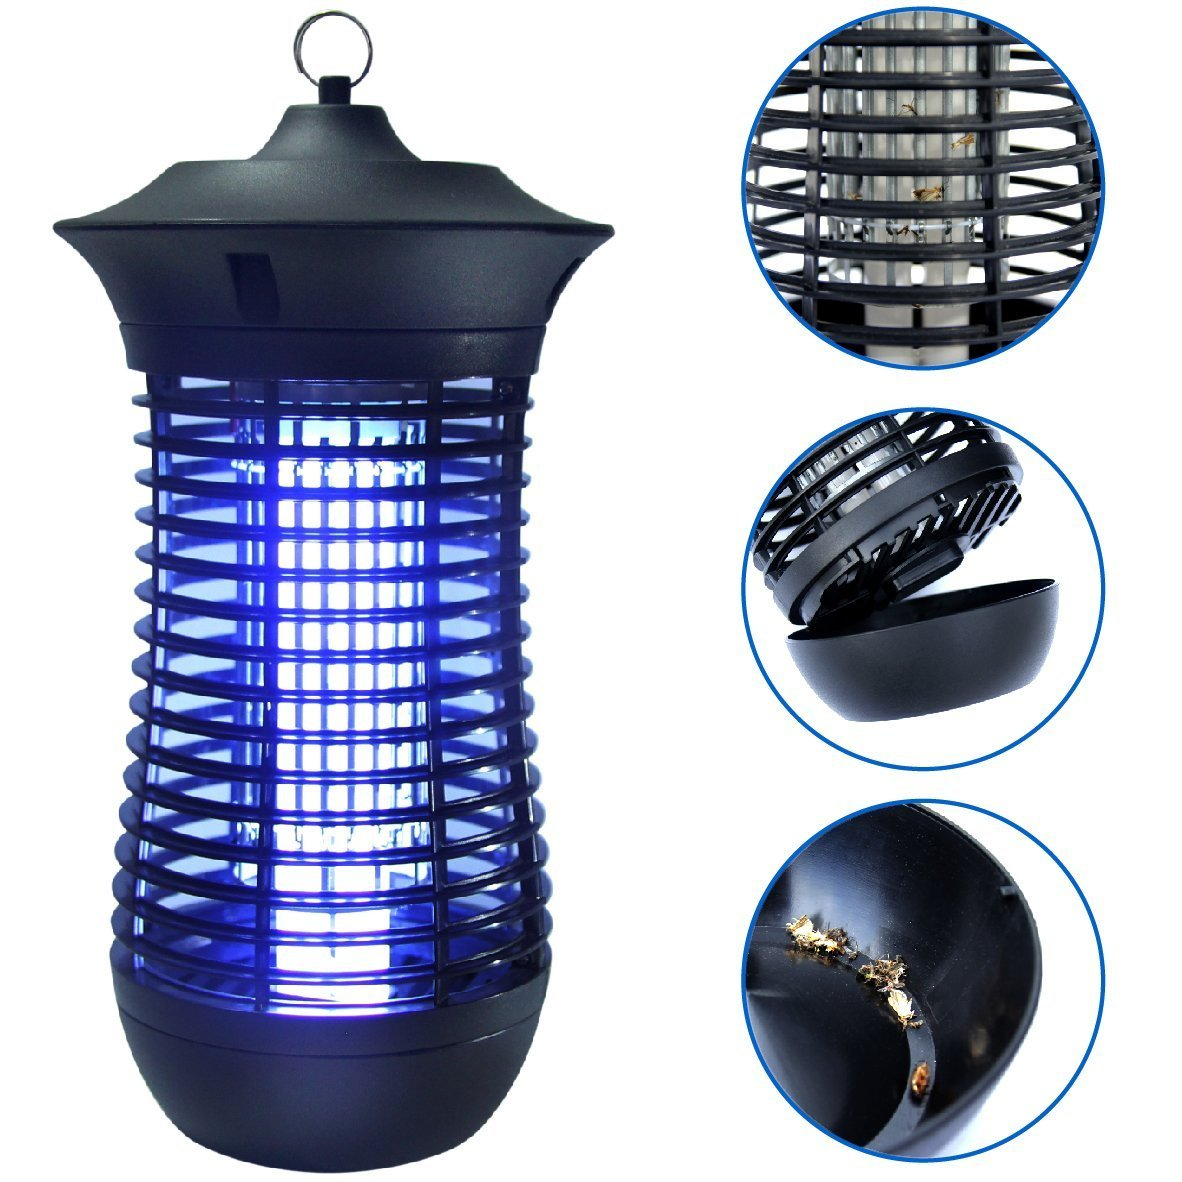 The Best Bug Zapper 3